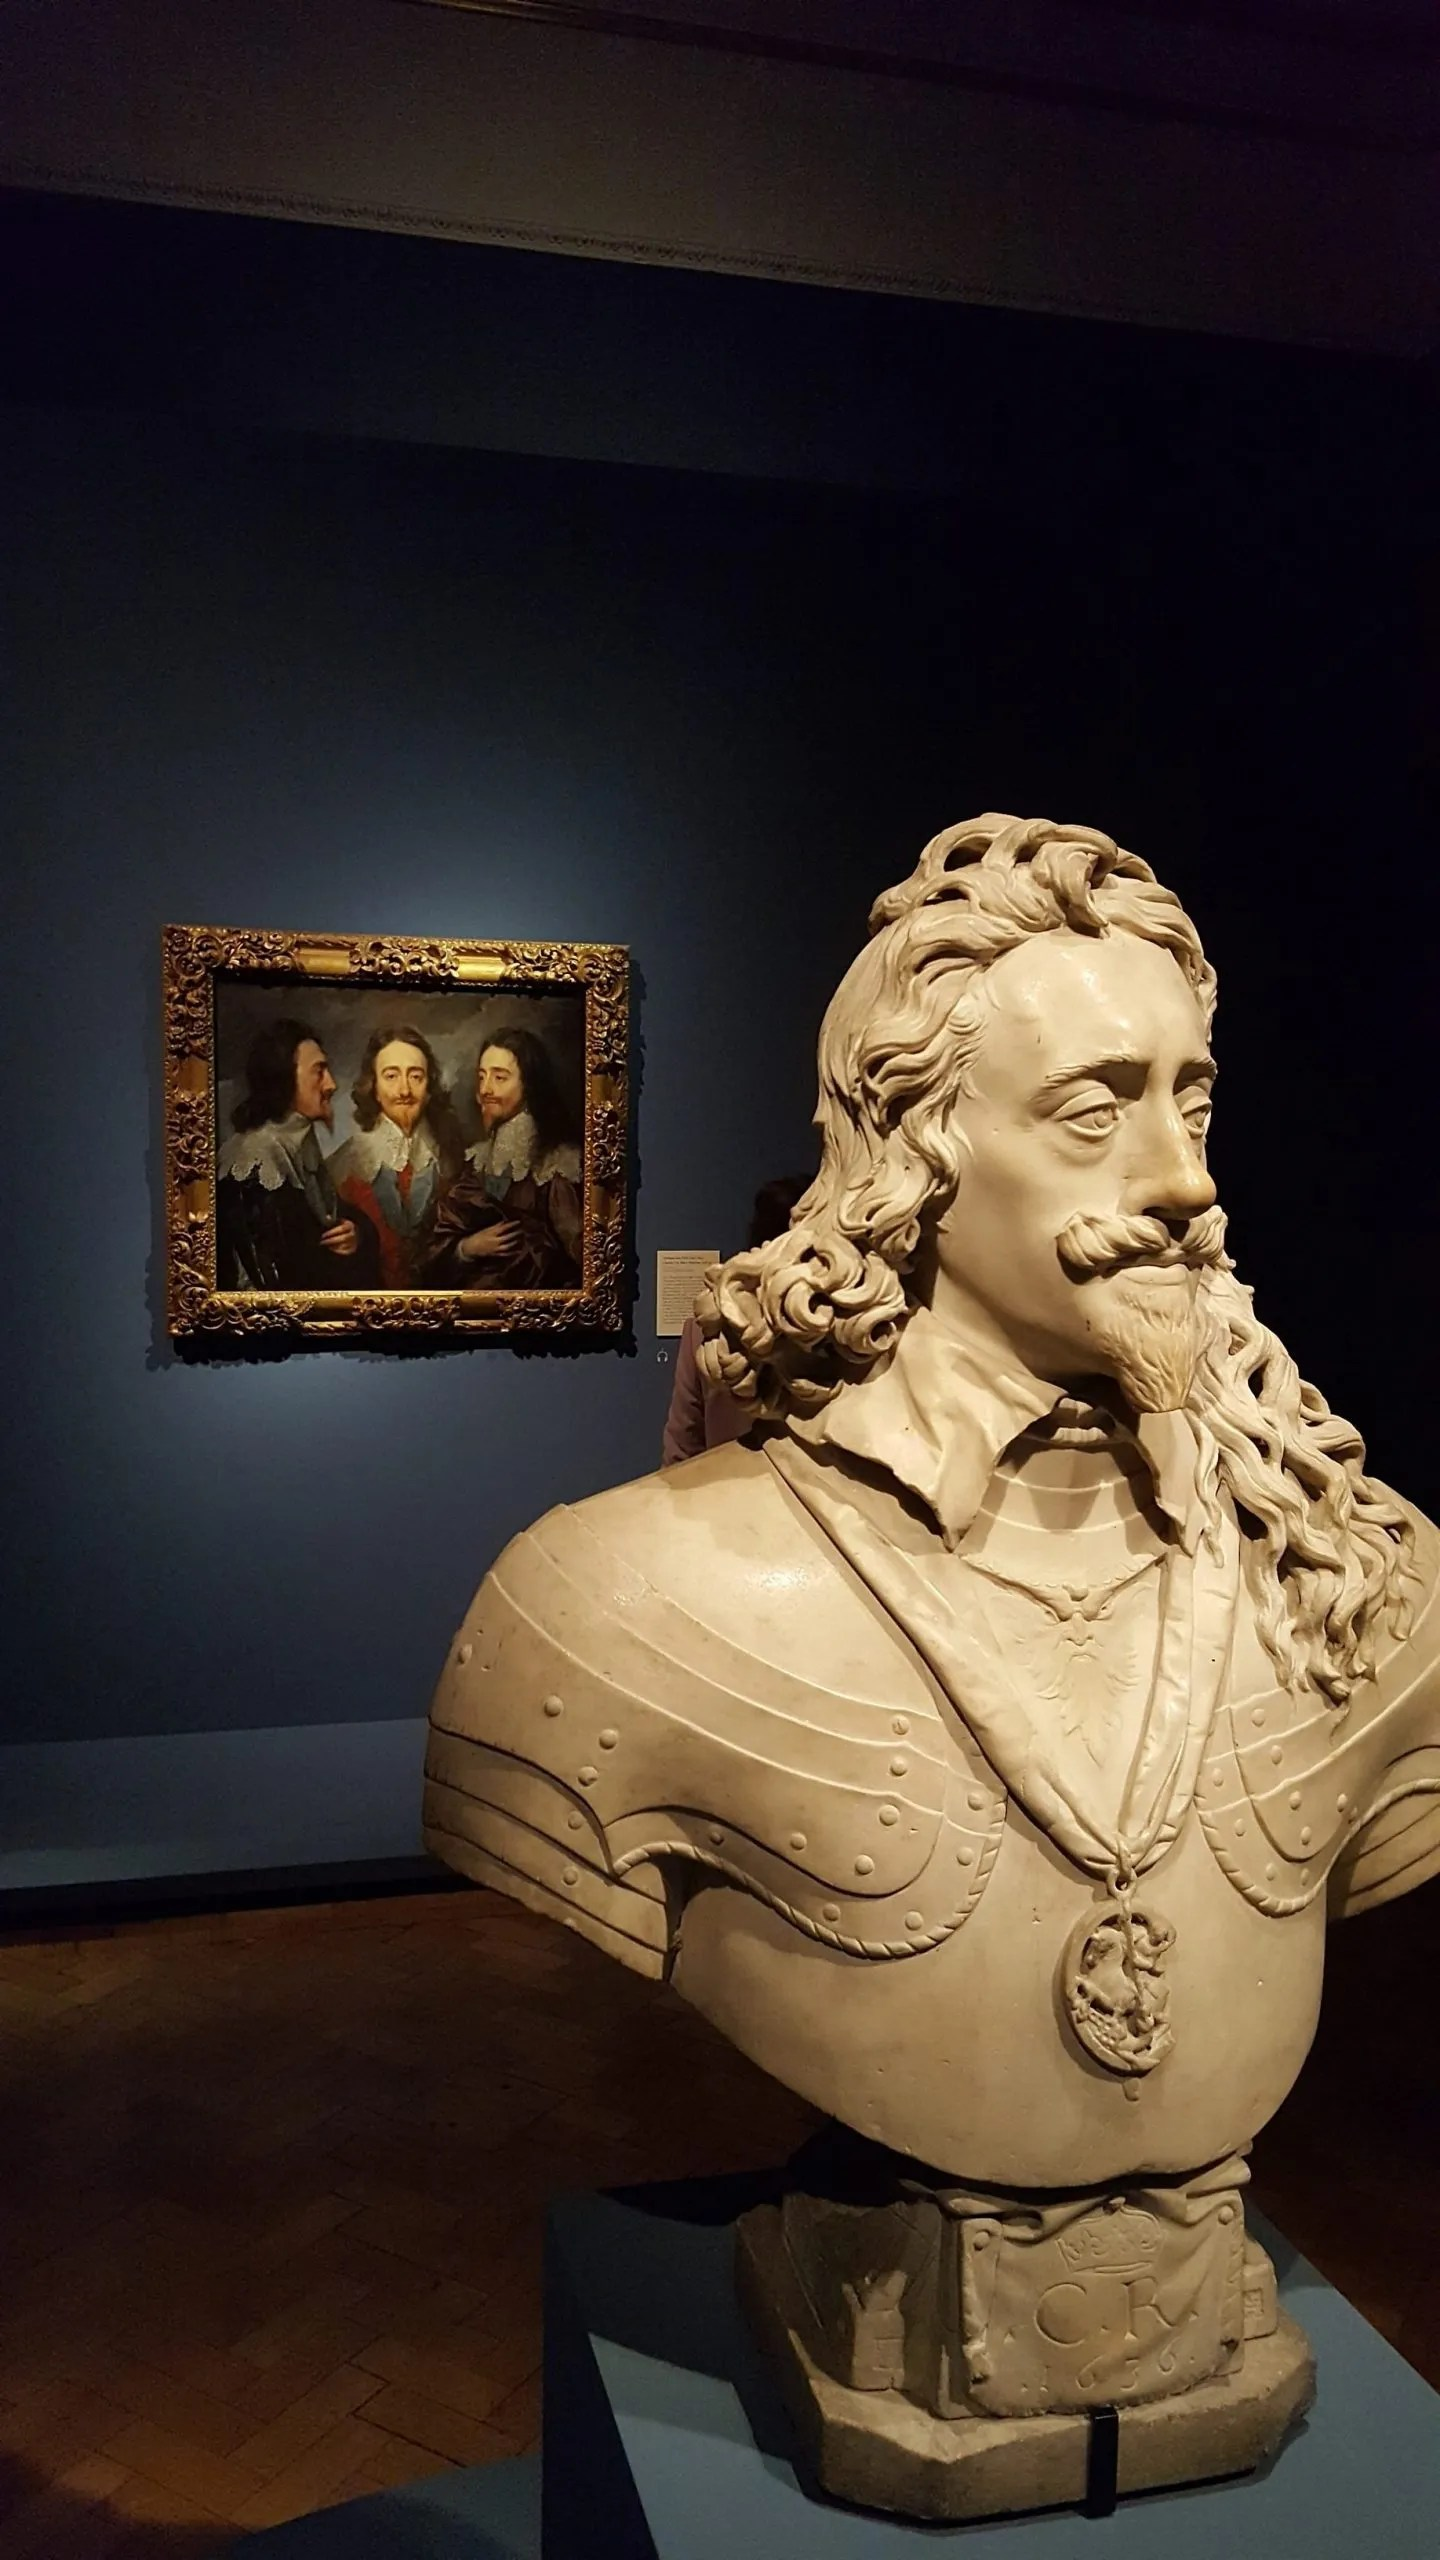 Regicide, Restoration and Royal Art and Power